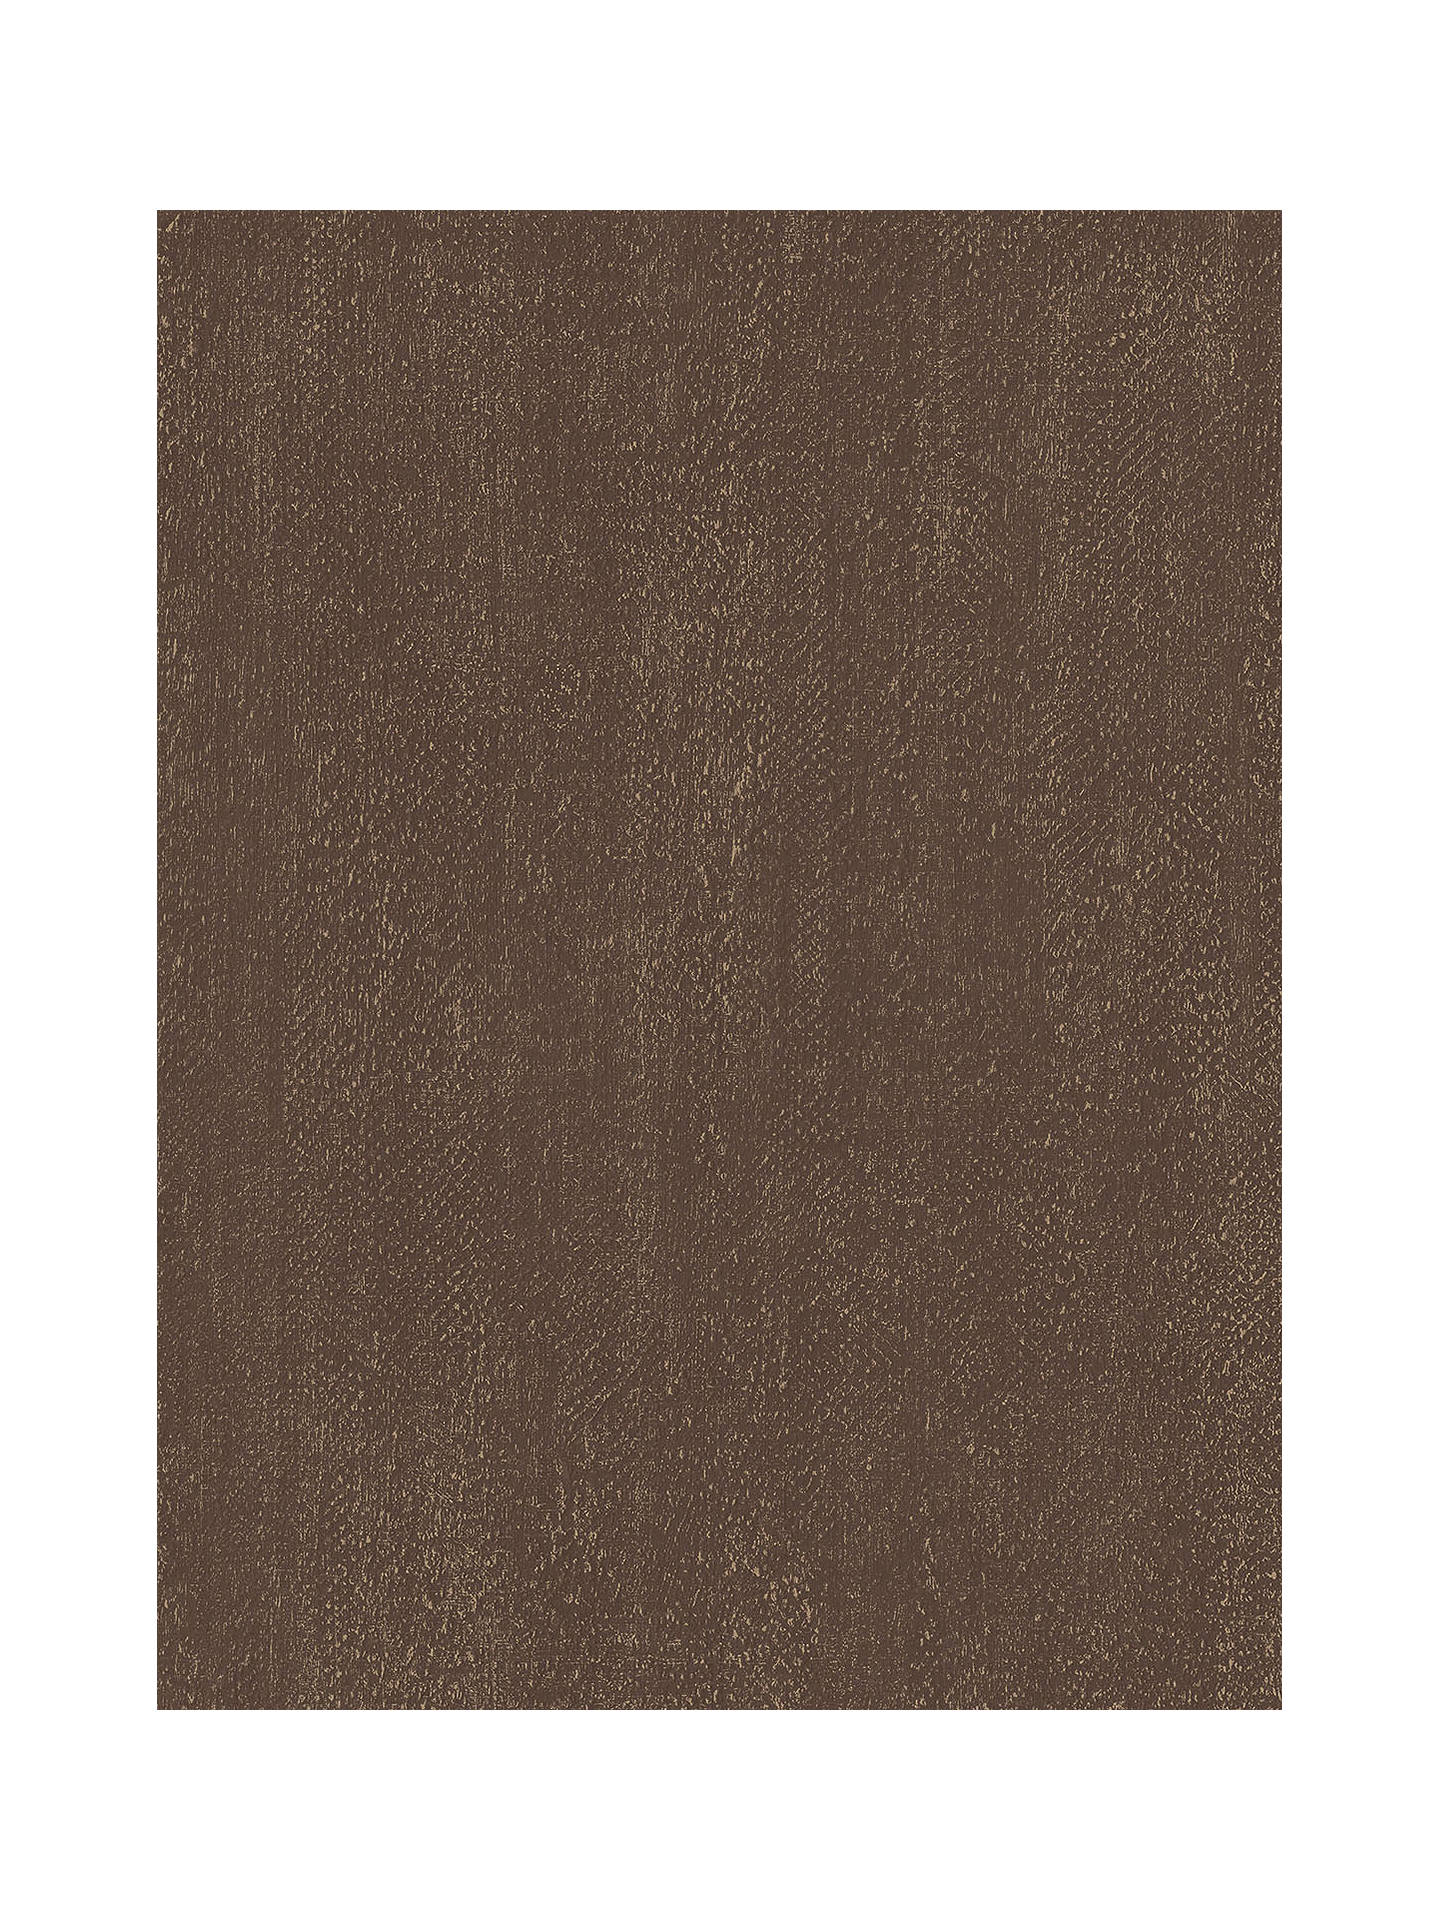 Buy Galerie Tip Texture Wallpaper, G67821 Online at johnlewis.com